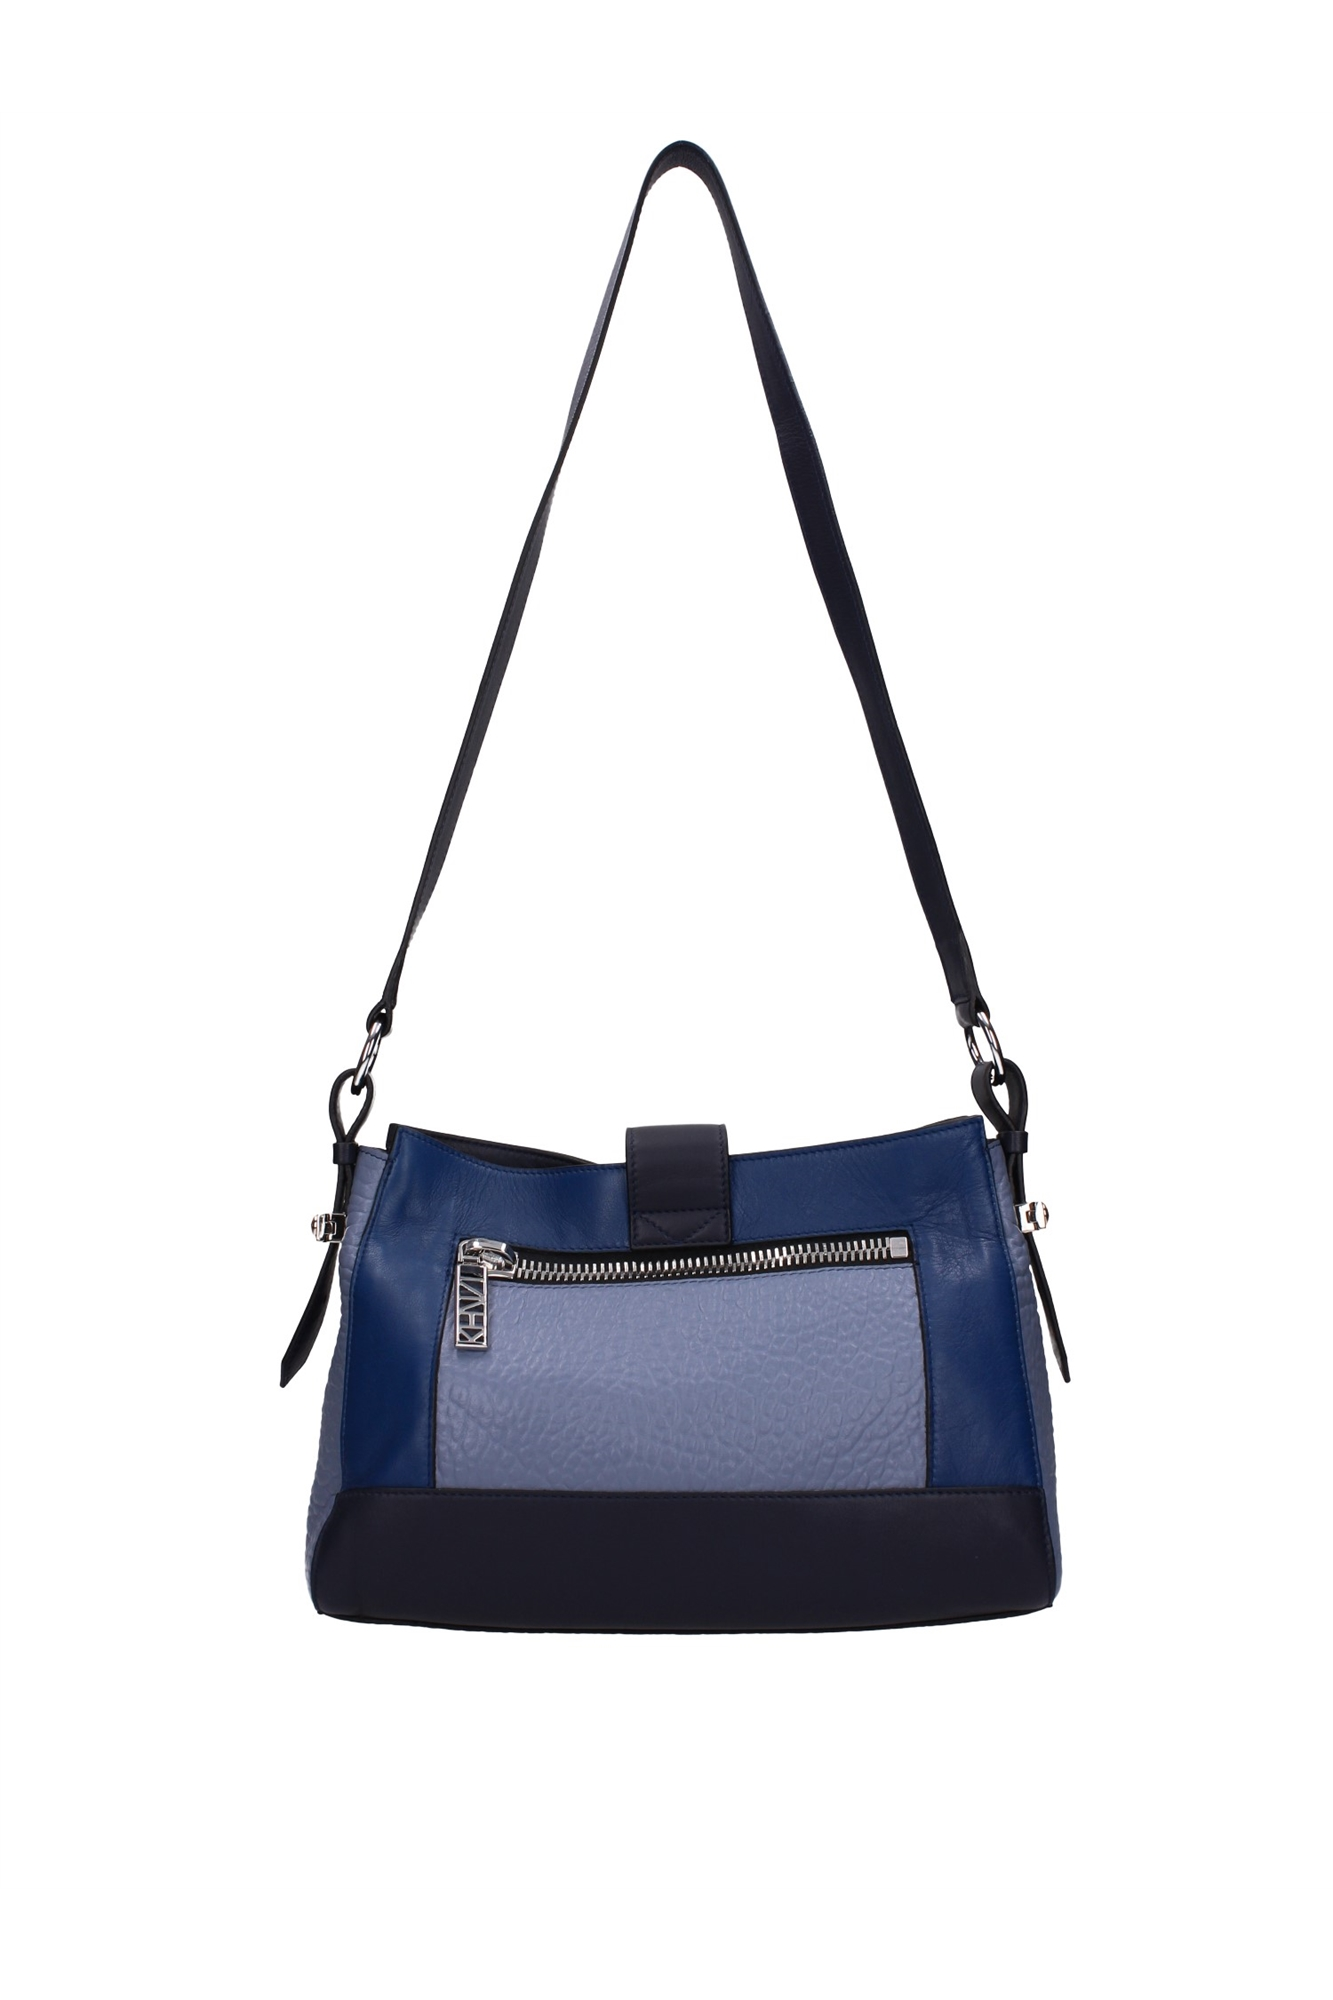 Fantastic Alessia74 Women39s Handbag Blue PBG291E40 OFF